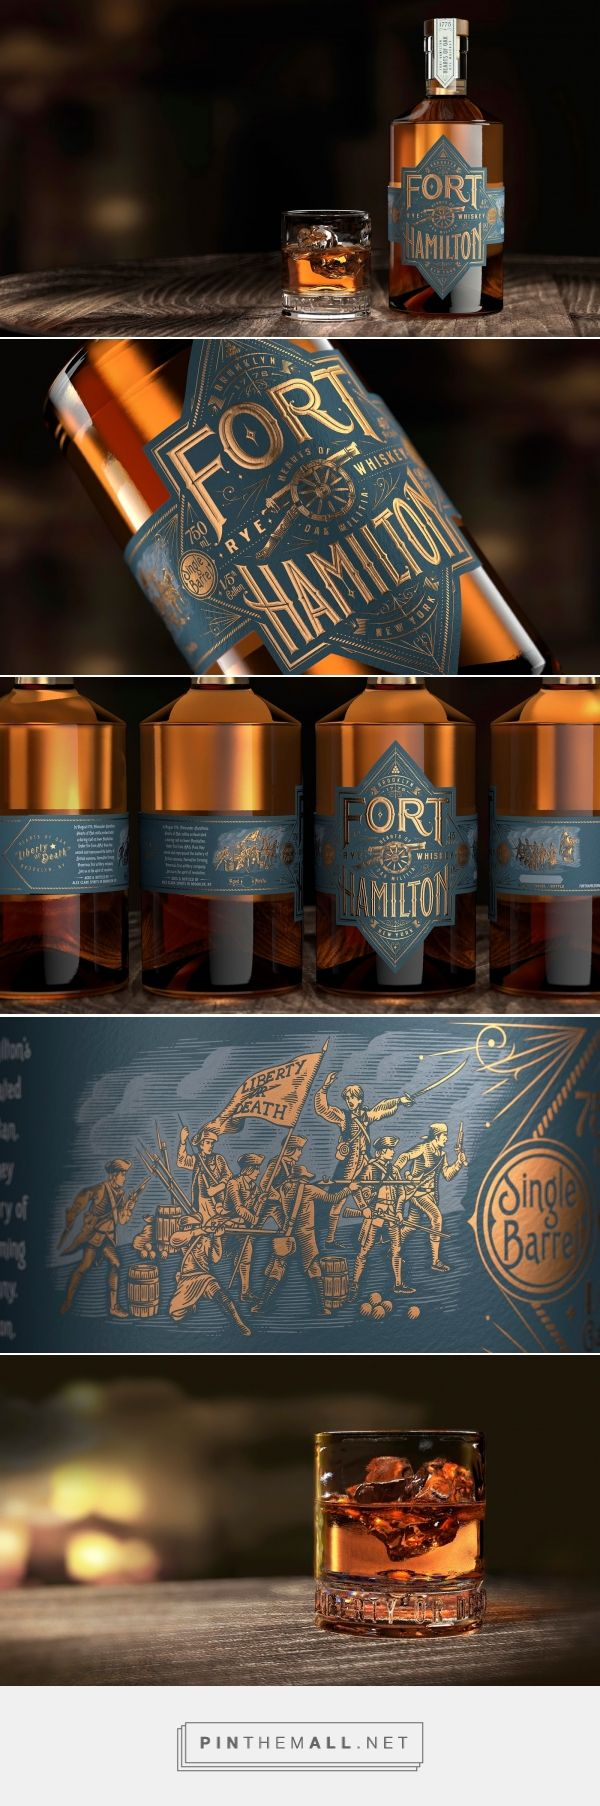 Fort Hamilton Whiskey packaging design by Bulletproof - http://www.packagingoftheworld.com/2018/02/fort-hamilton.html